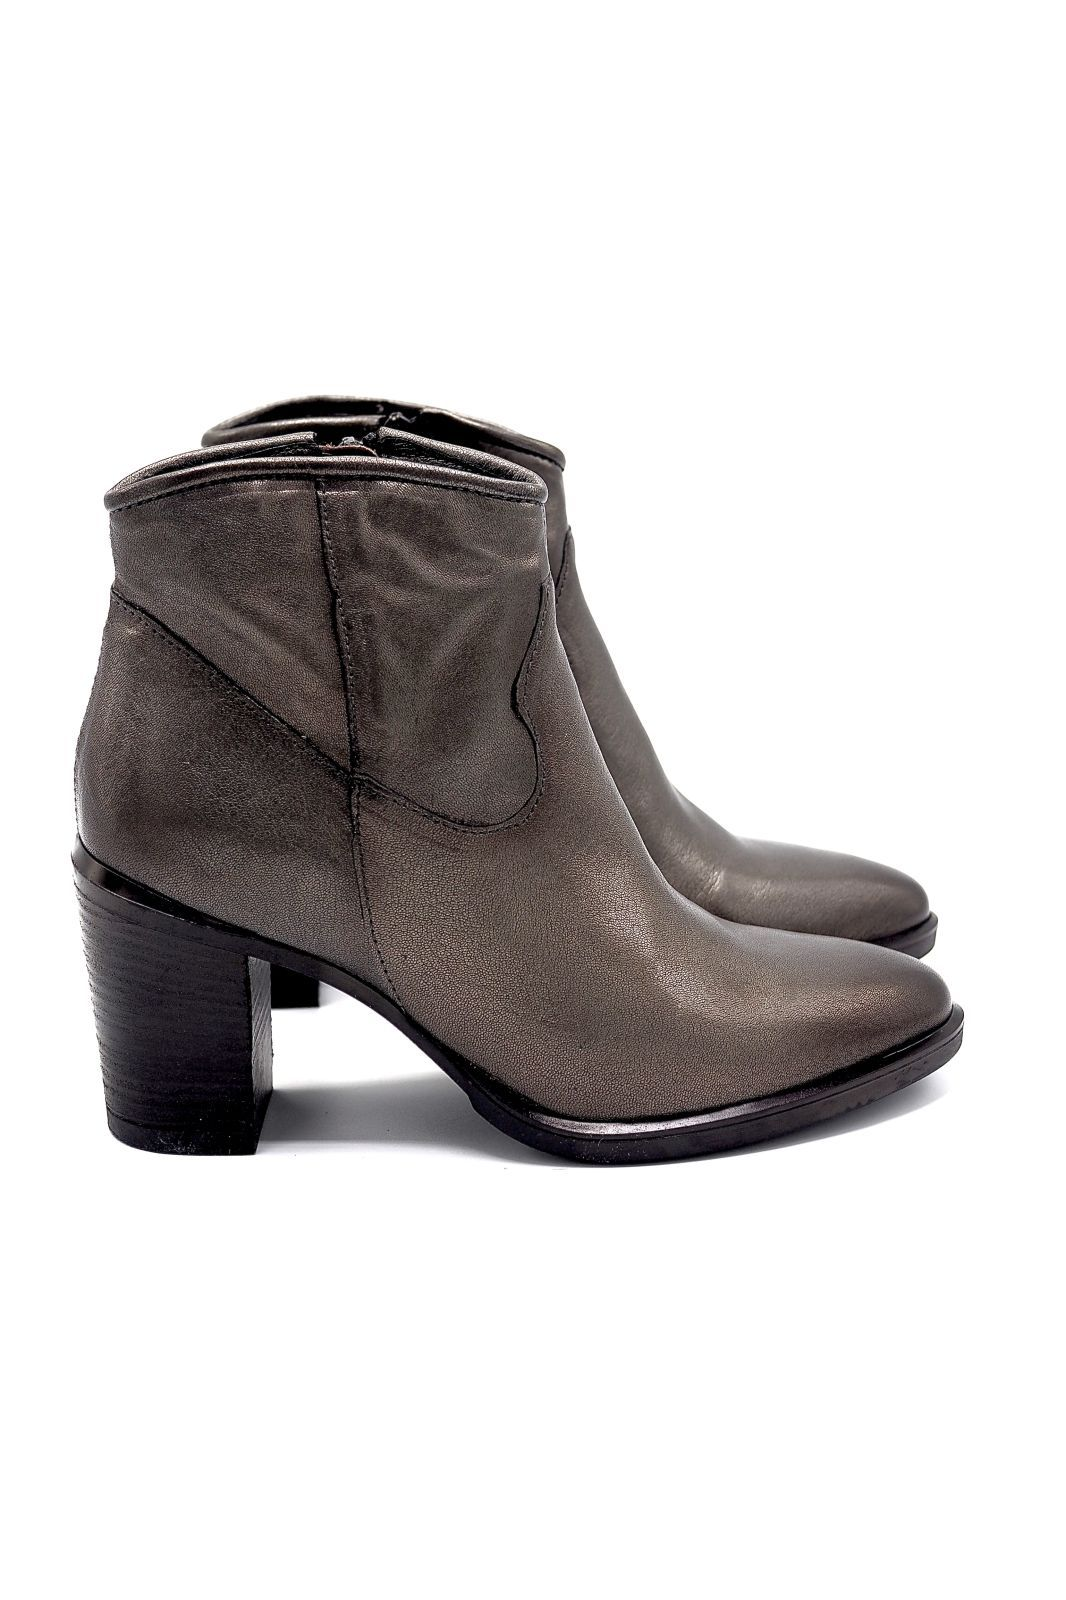 Mjus boots Bronze femmes (MJUS-Santiag T6 large bronze - 210242 Santiag métalisé bronze) - Marine | Much more than shoes